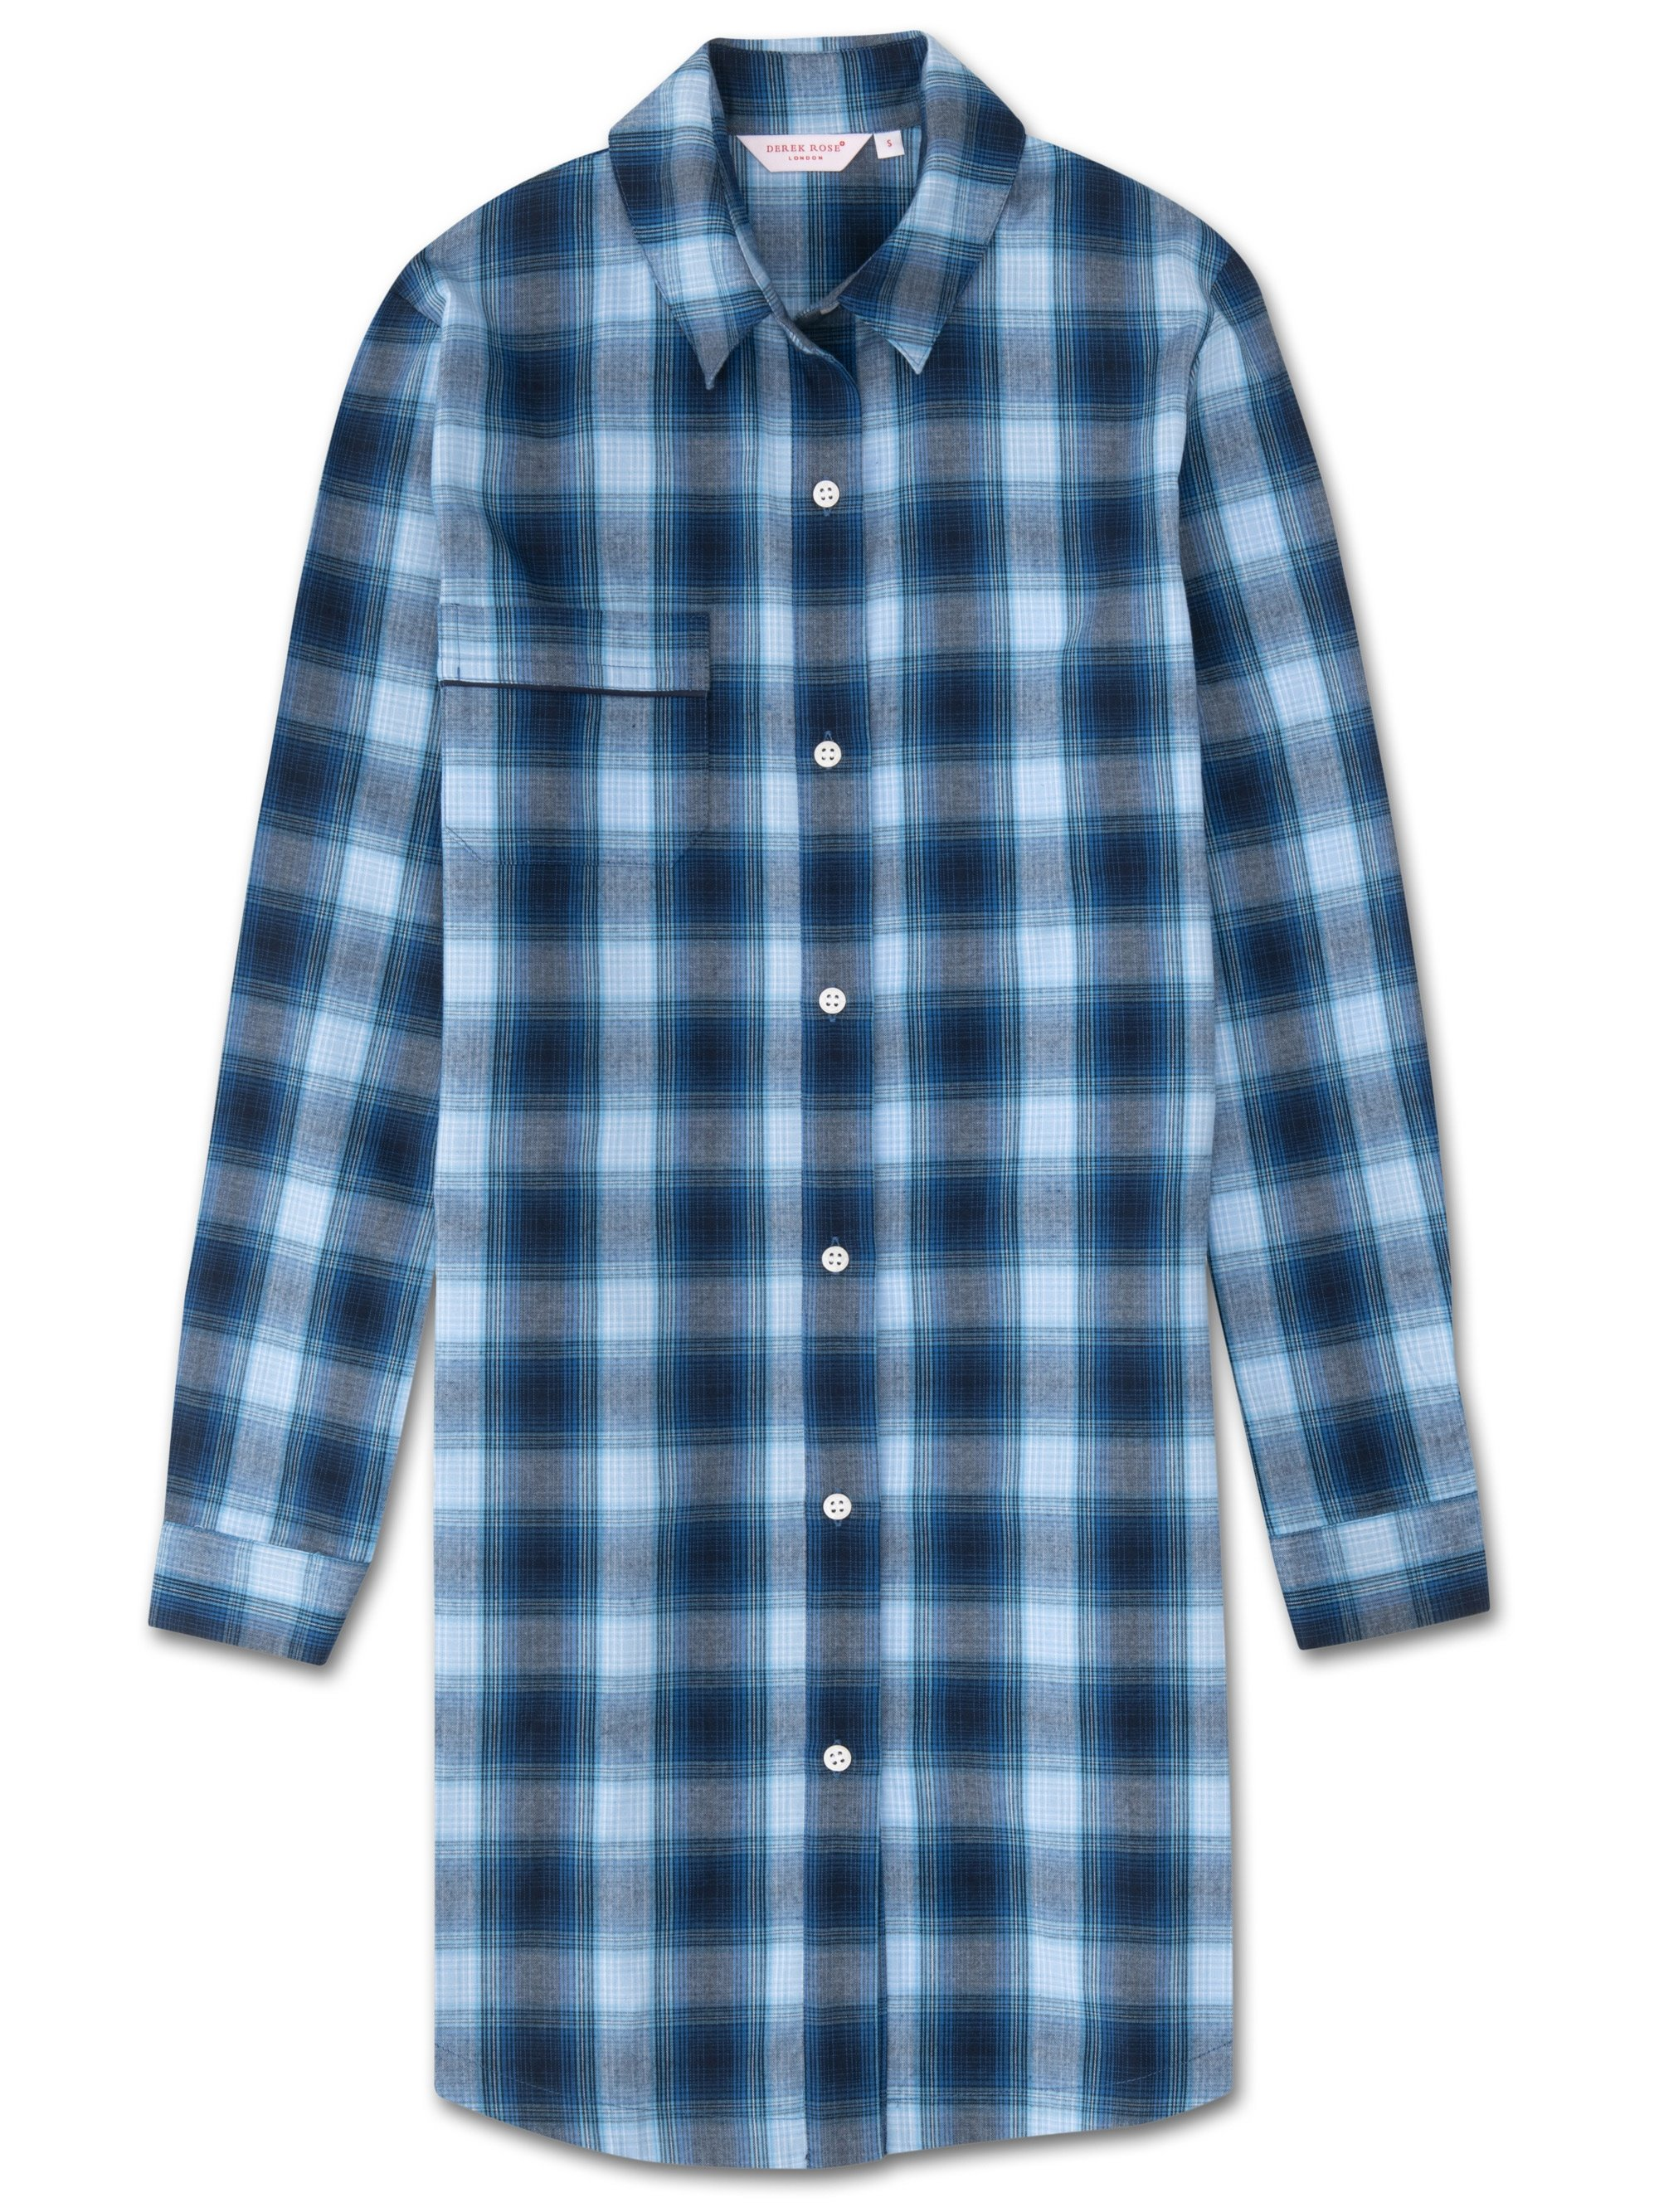 Women's Nightshirt Ranga 36 Brushed Cotton Check Blue